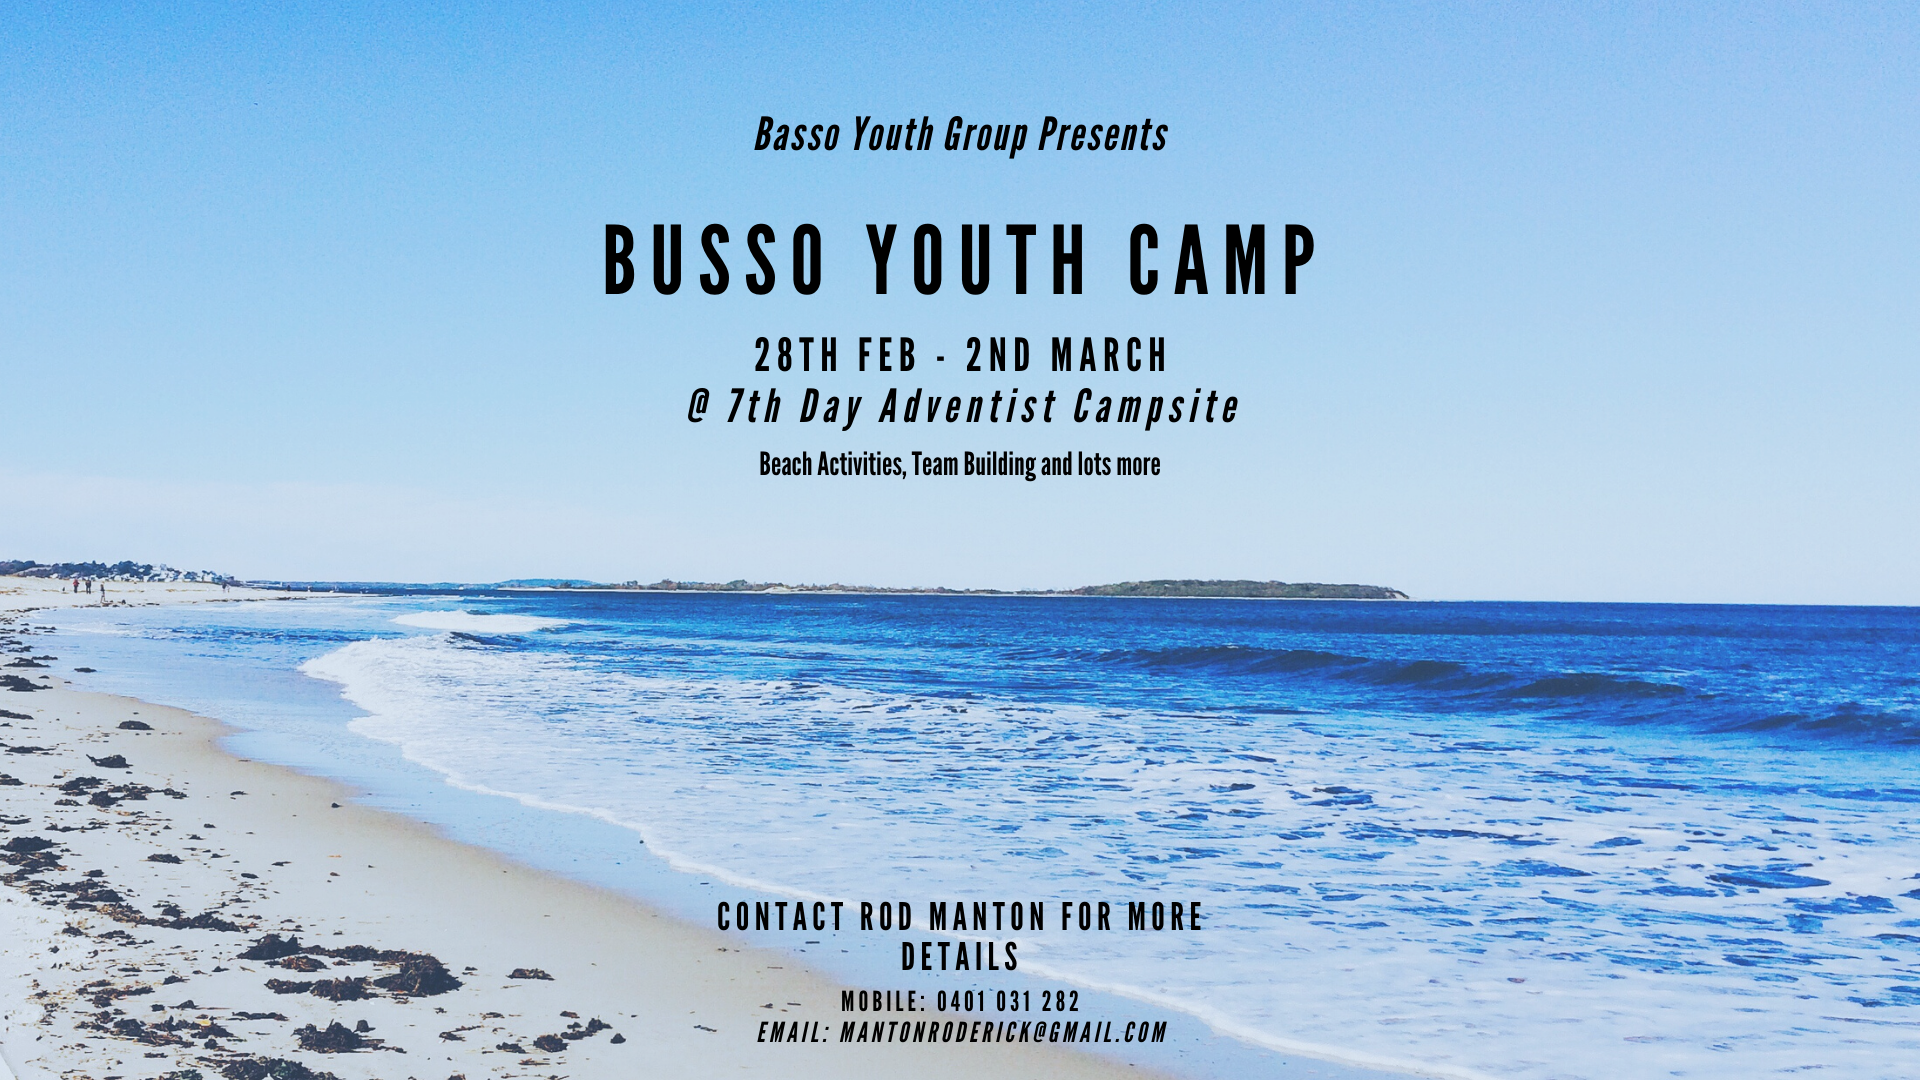 Busso Youth Camp